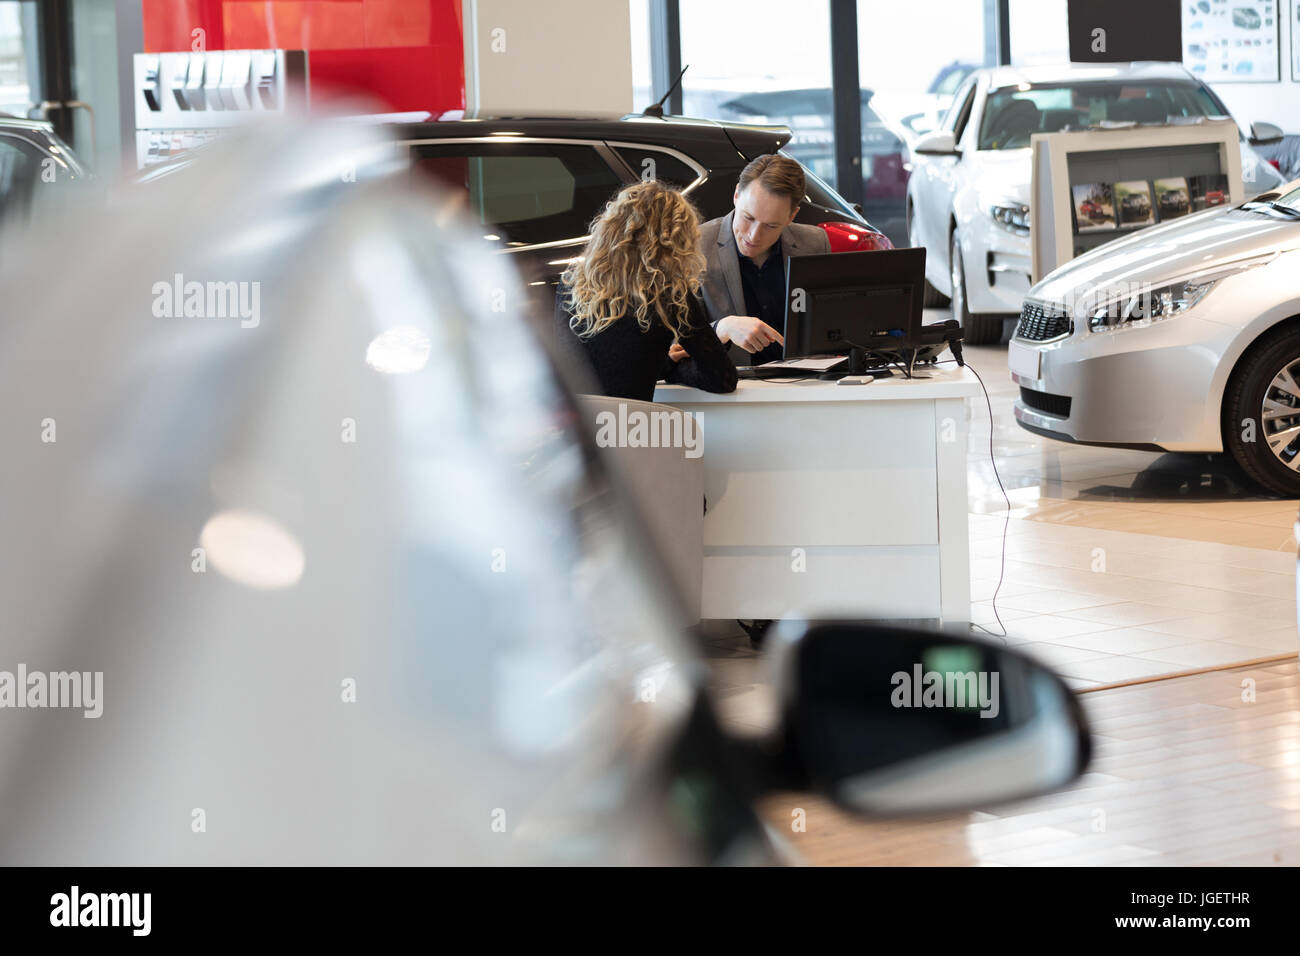 Salesman discussing with customer in car showroom - Stock Image